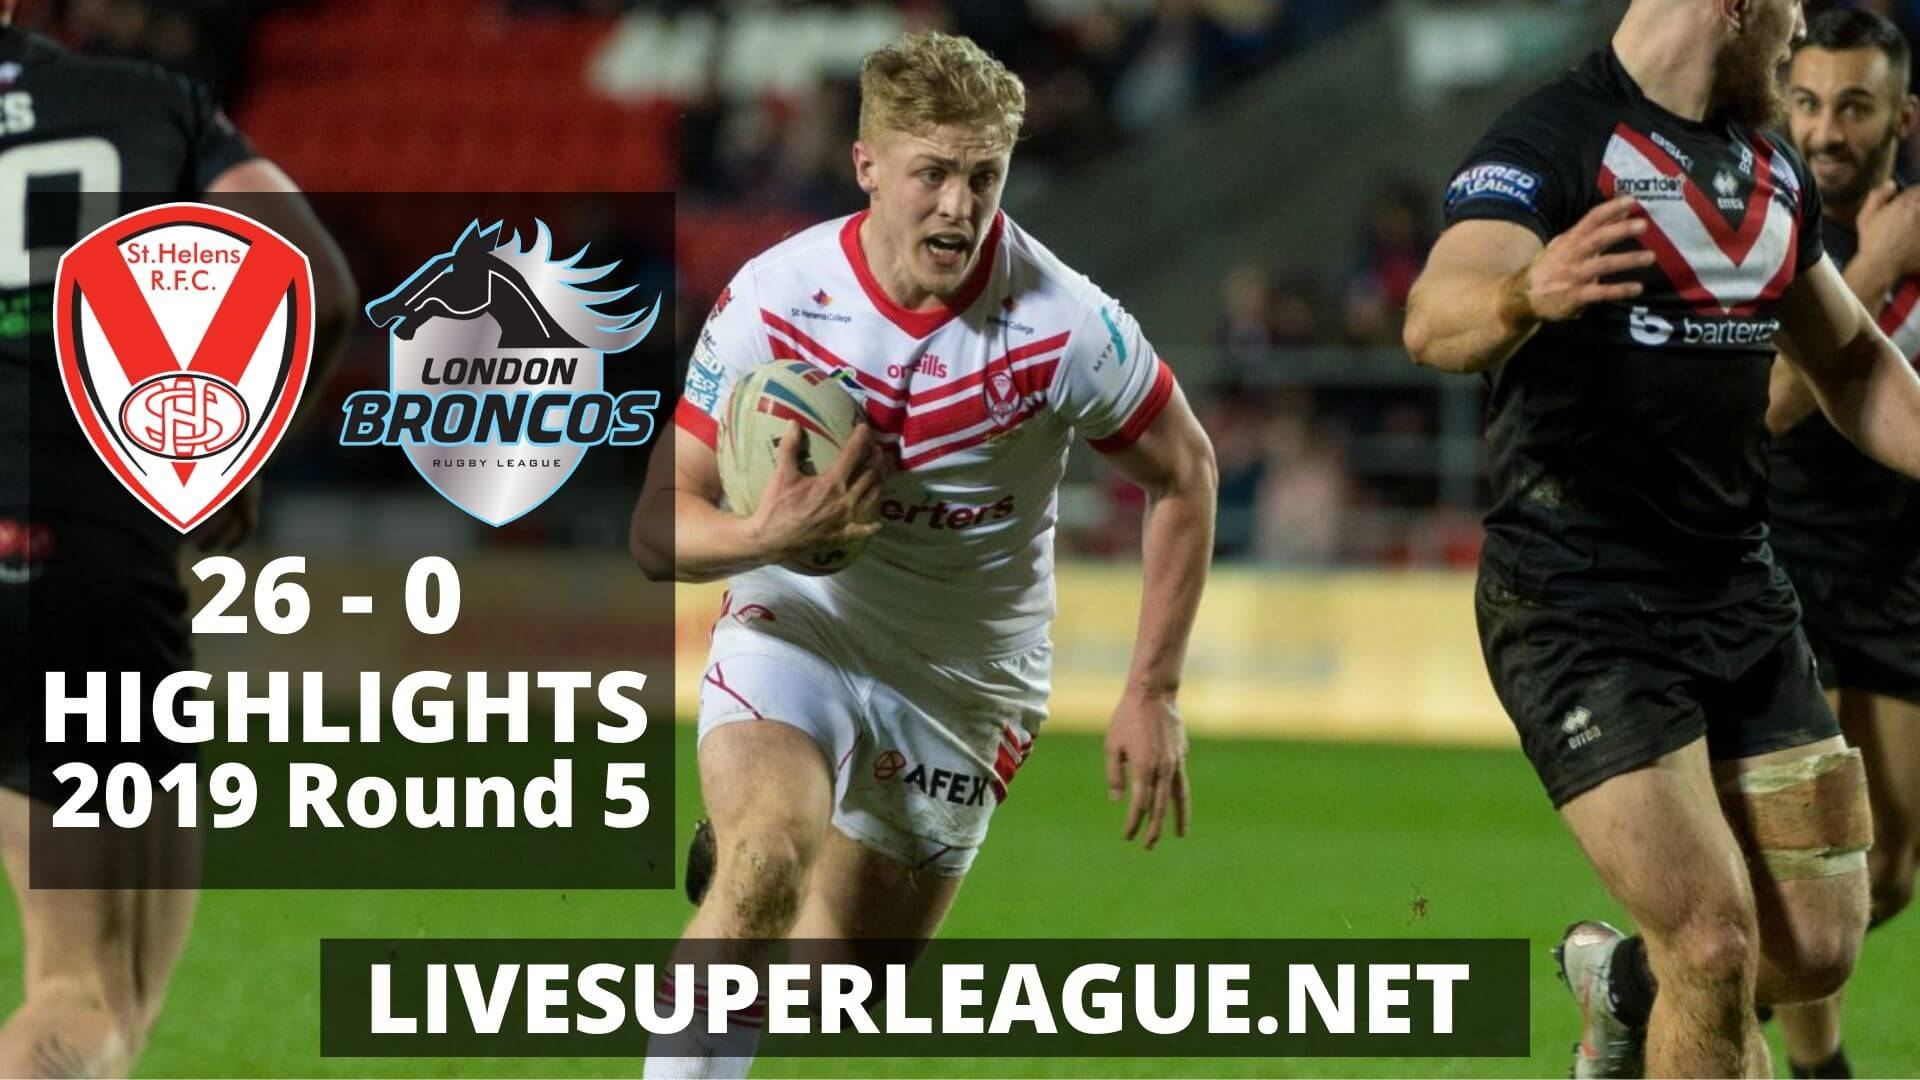 St Helens Vs London Broncos Highlights 2019 Round 5